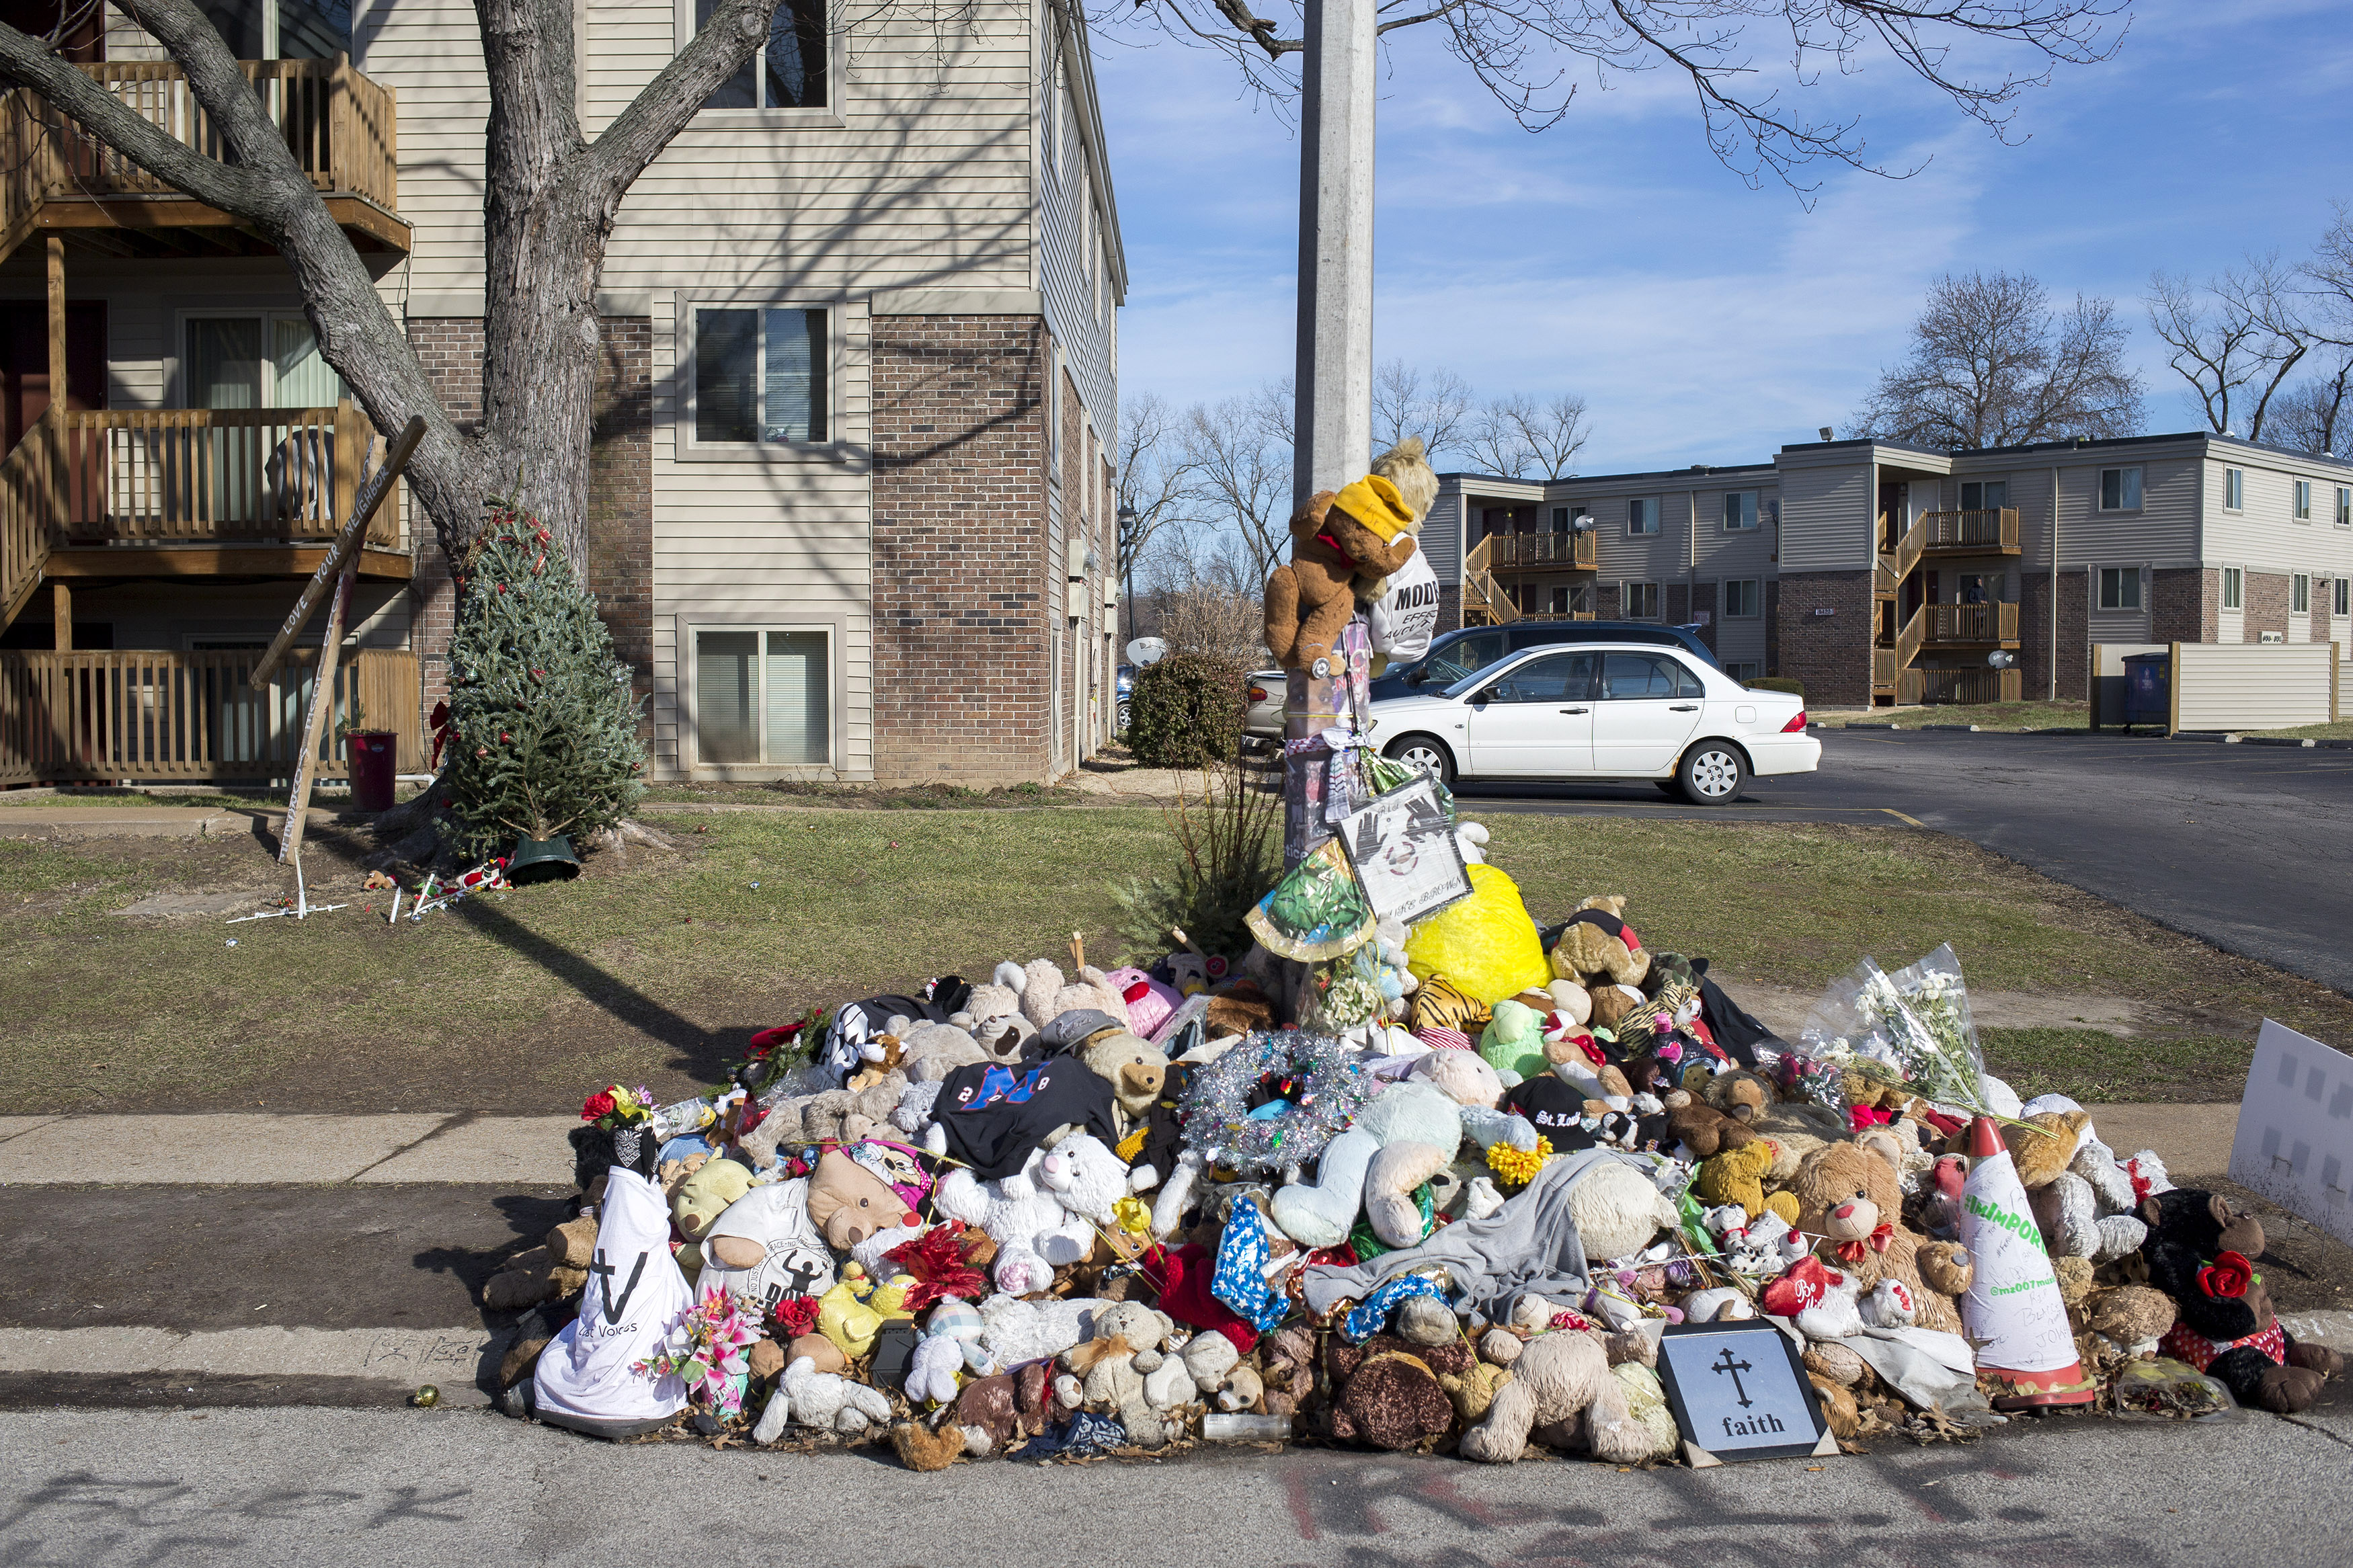 A Christmas tree is seen near a memorial to Michael Brown in Ferguson, Mo., on Dec. 25, 2014